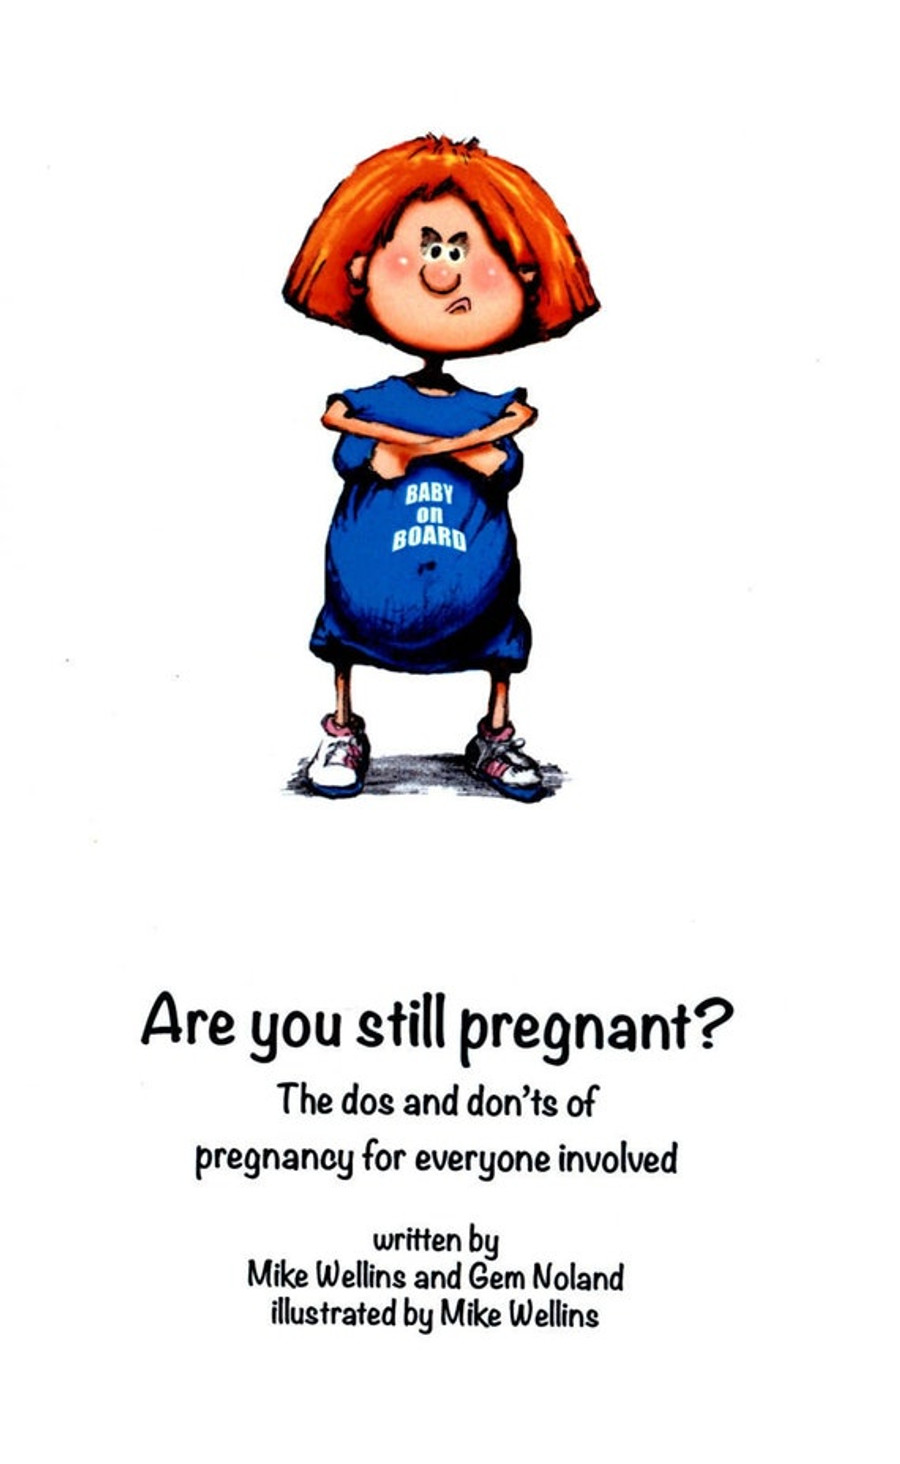 Are You Still Pregnant? by Mike Wellins and  Gem Noland